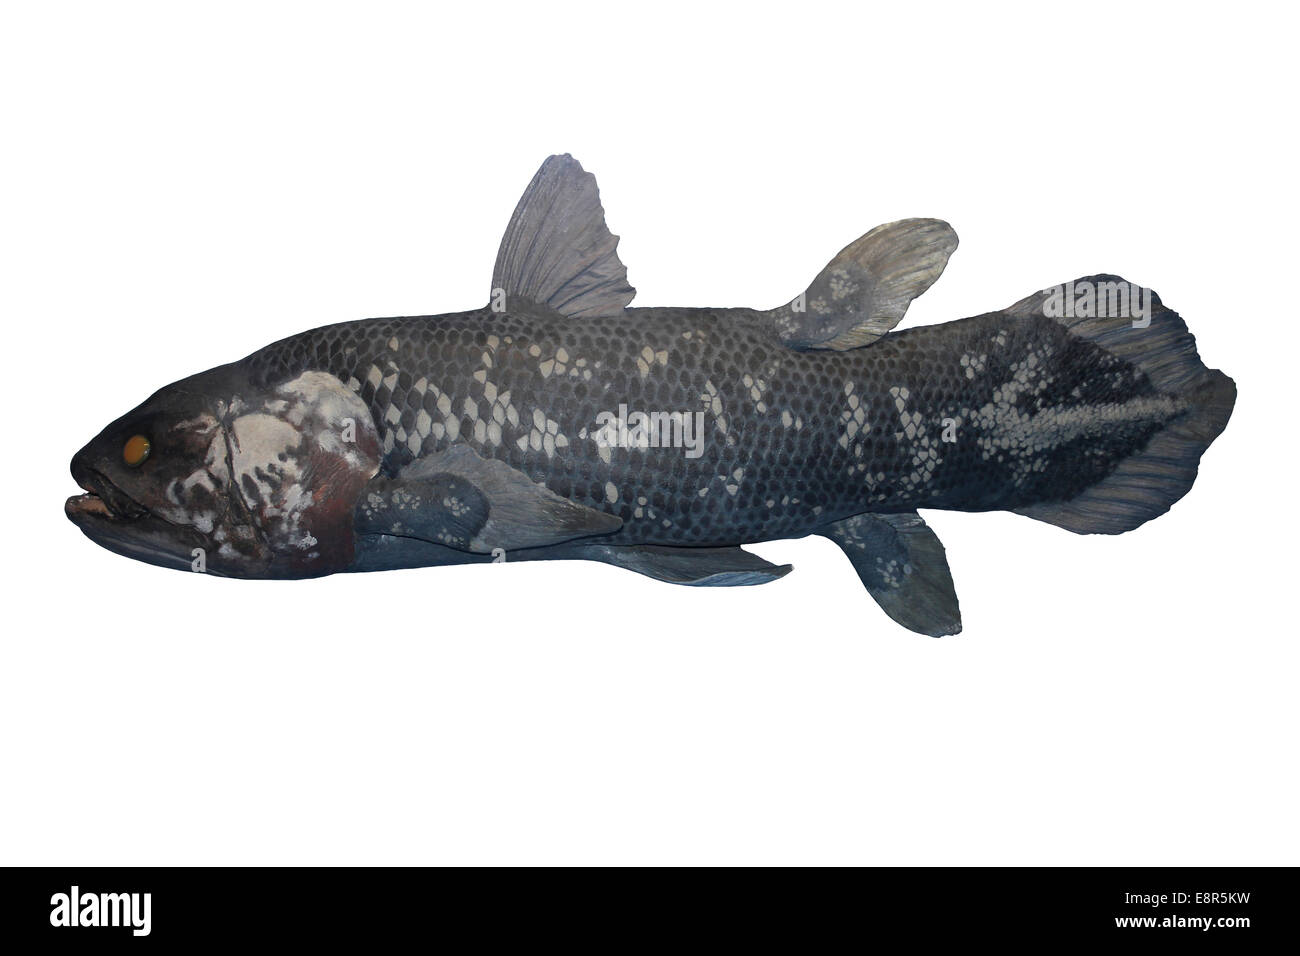 Coelacanth Fish Cut-out - Stock Image